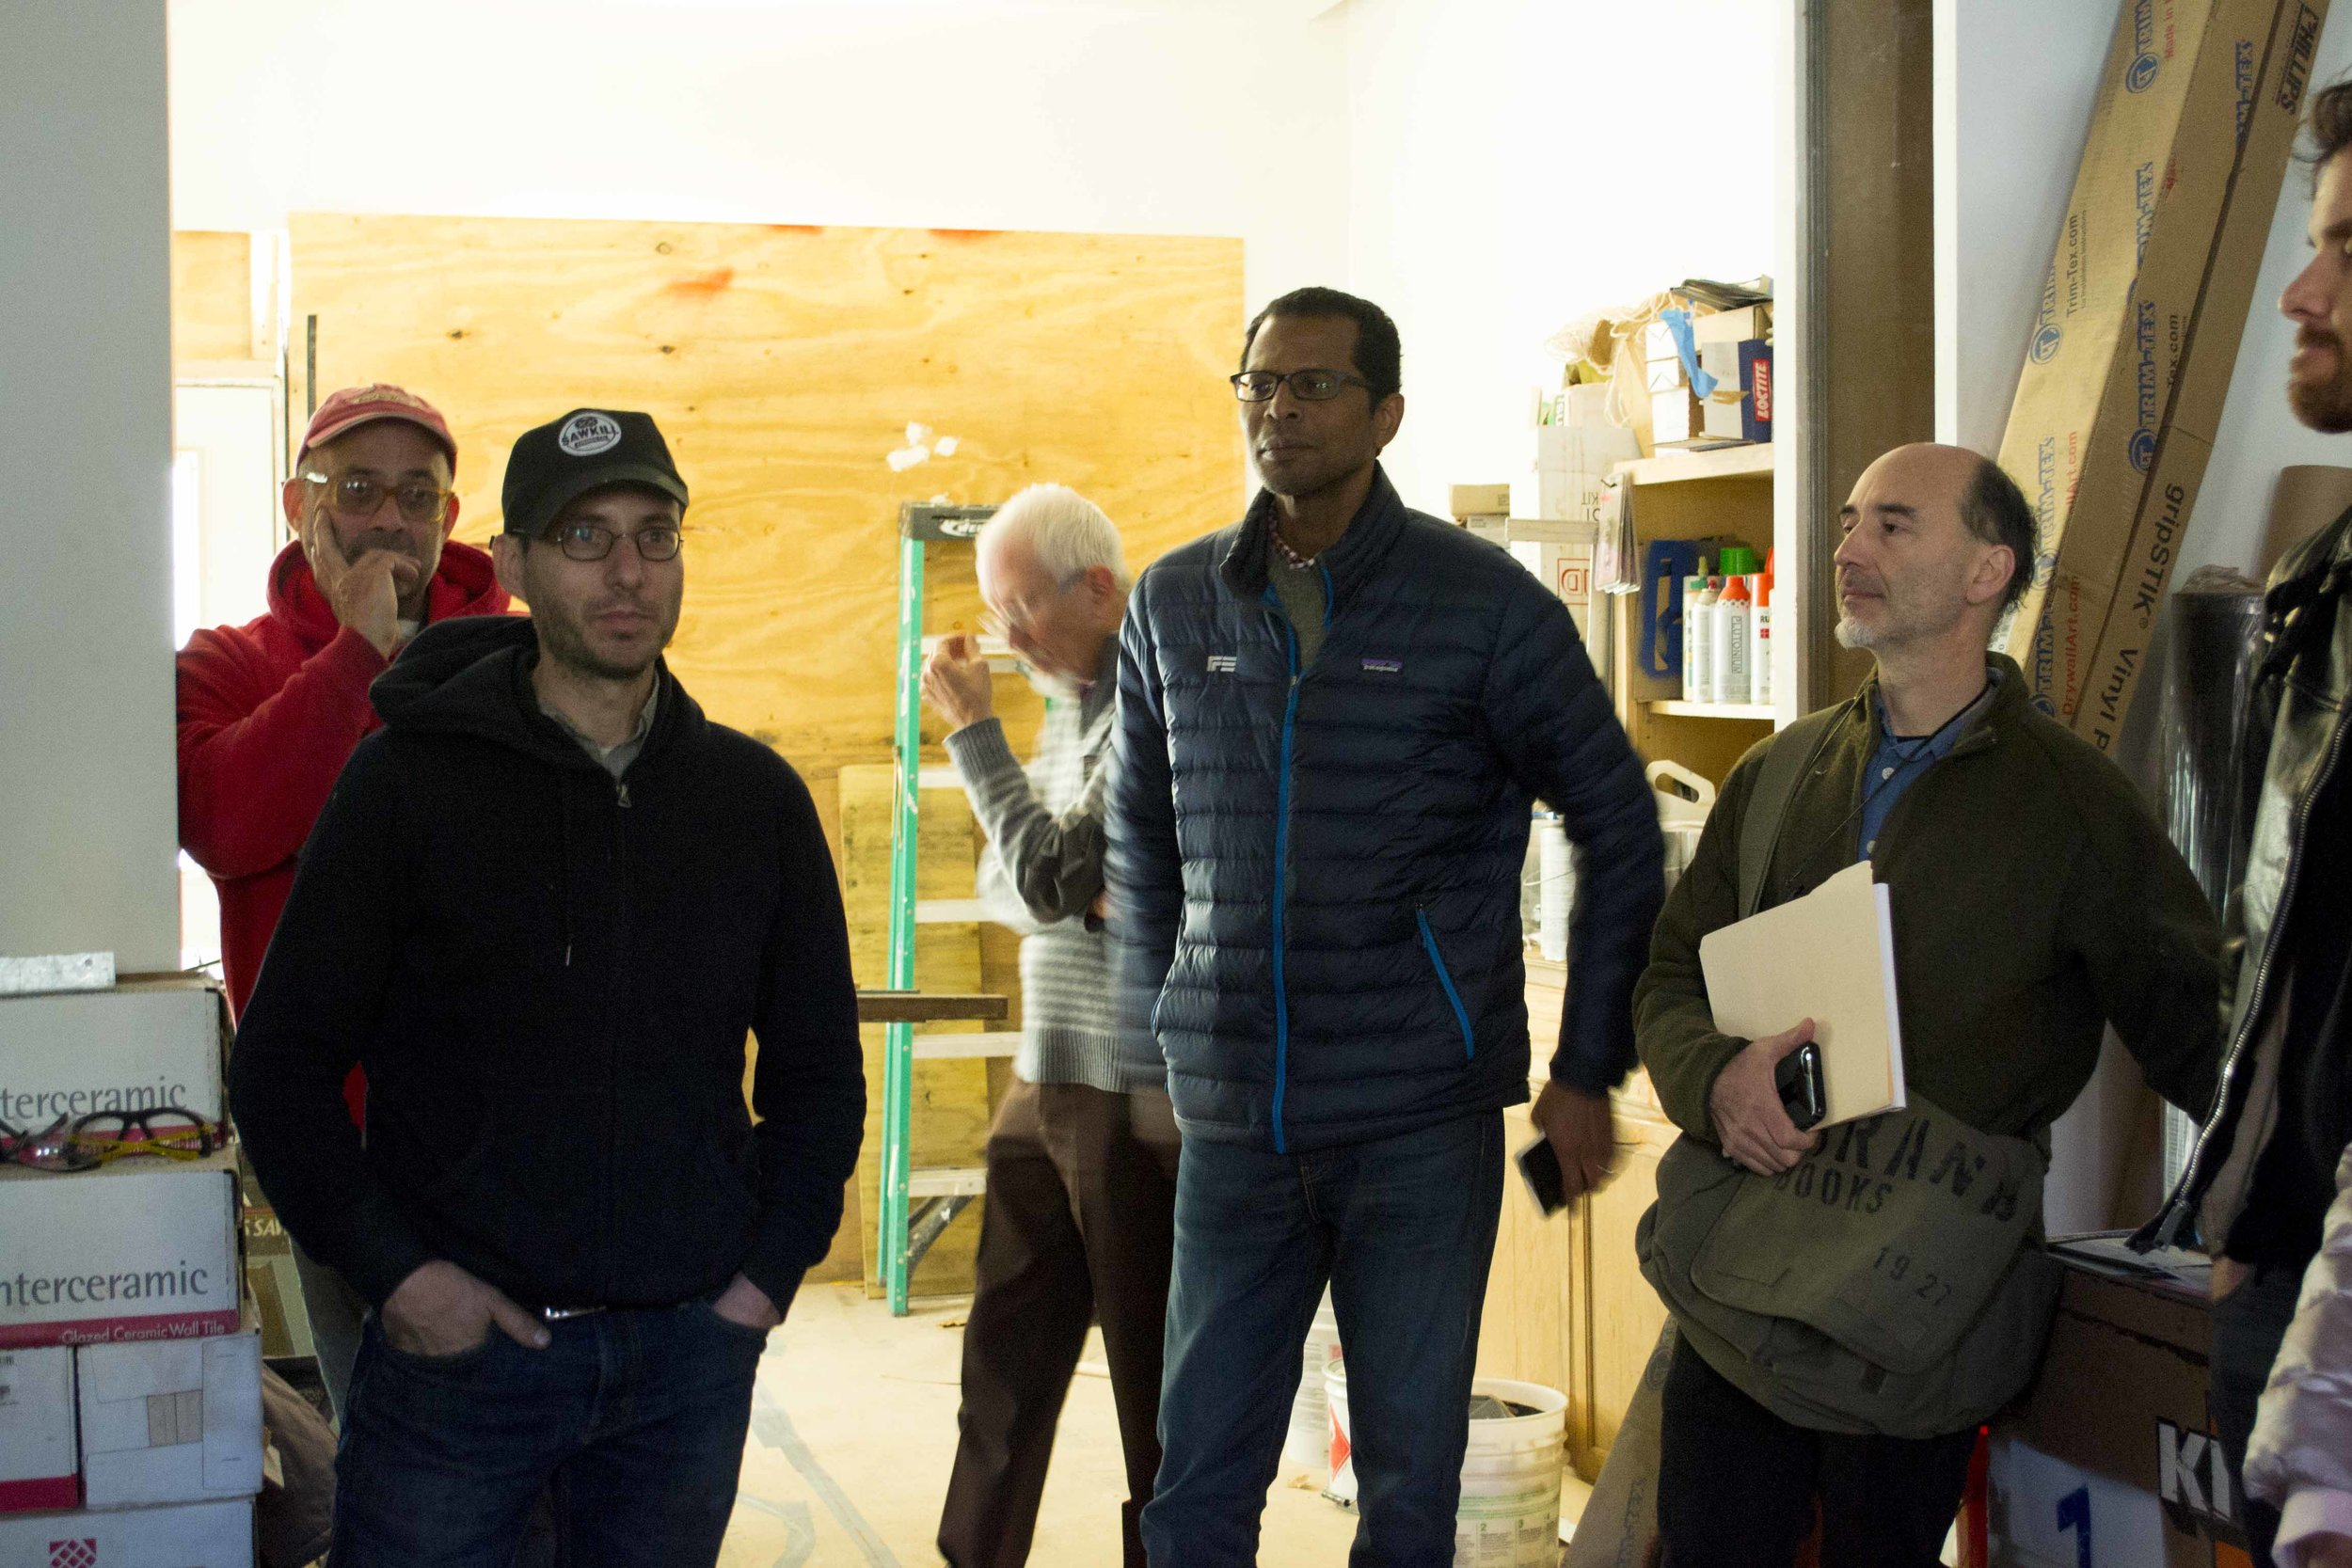 20161111__NY PASSIVE HOUSE DAYS_OPEN HOUSE_PAUL CASTRUCCI ARCHITECT__0050_lowres.jpg